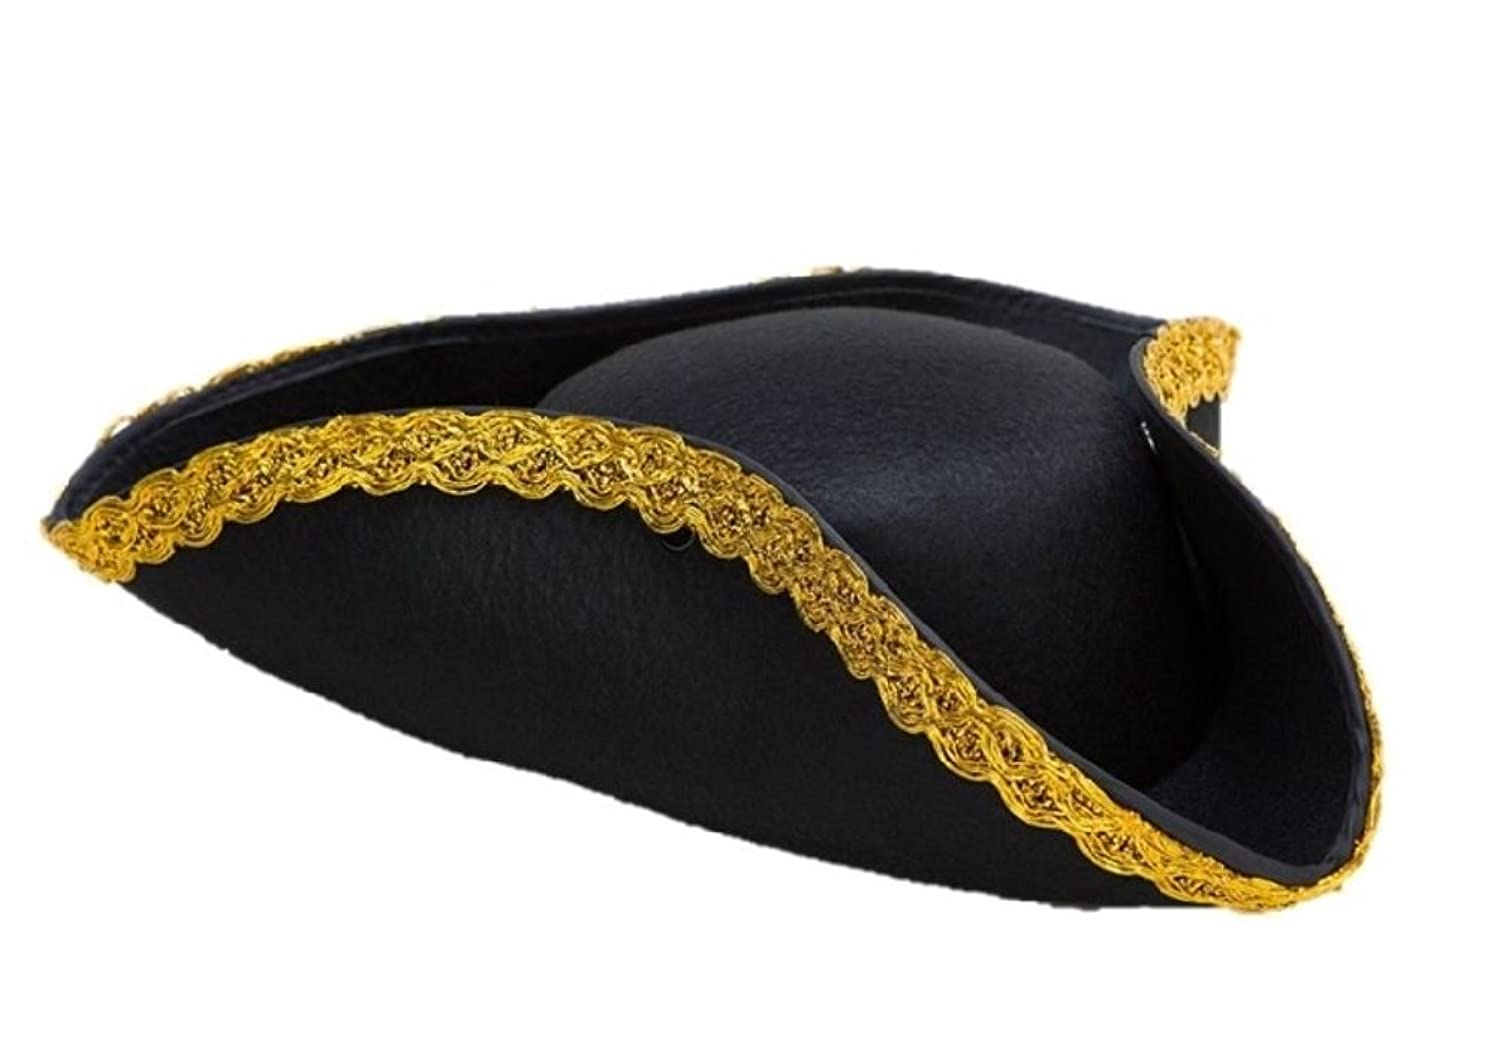 Men's Black Felt Tricorn Pirate Colonial Gold Trim Hat - DeluxeAdultCostumes.com